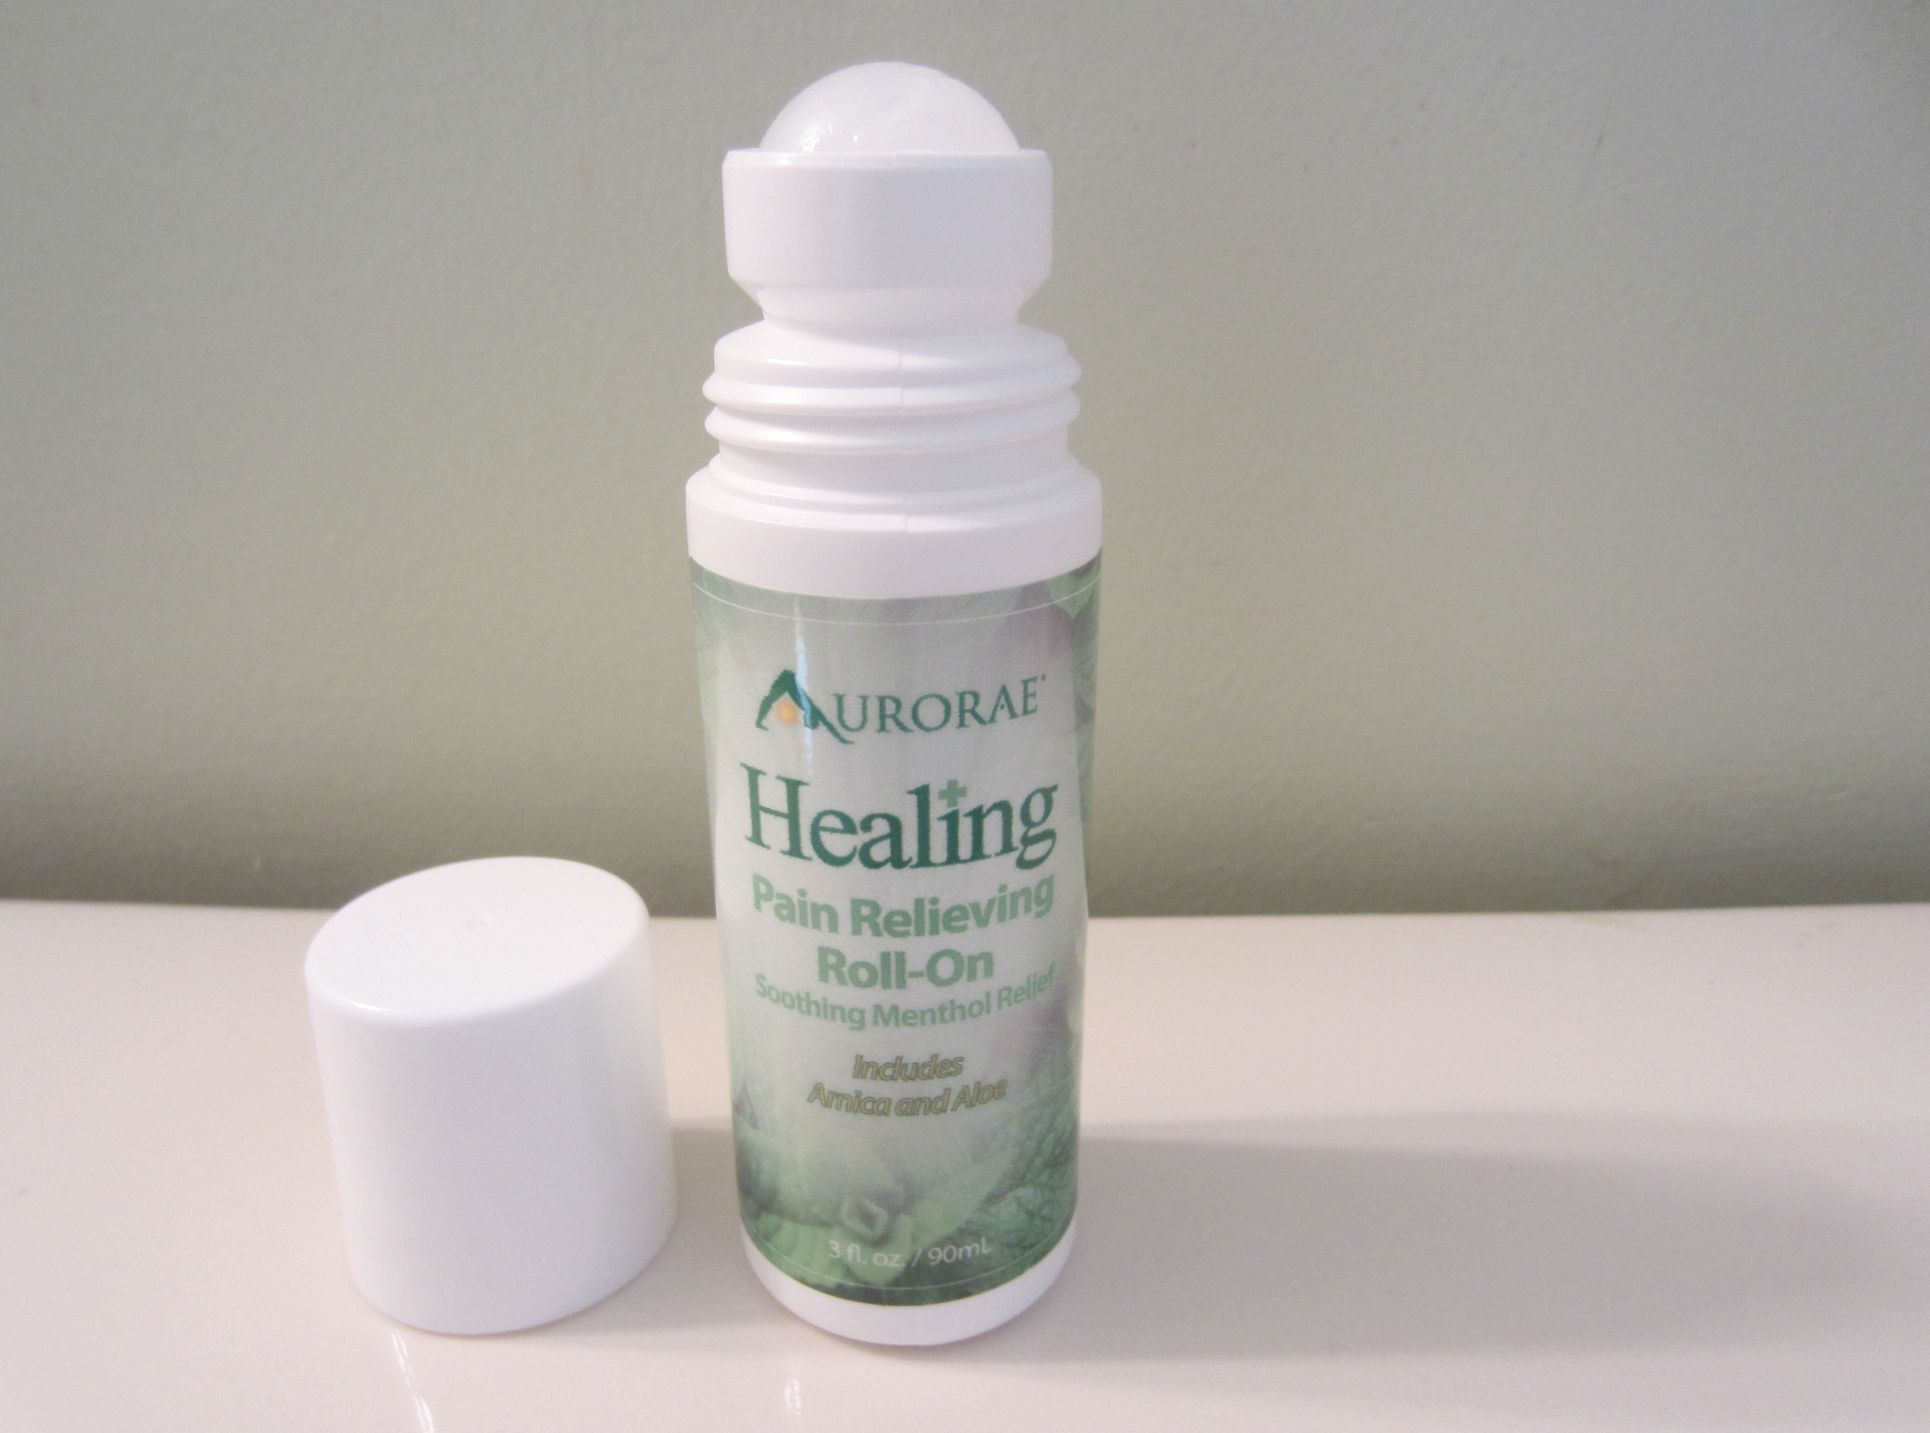 aurorae healing pain relieving roll-on